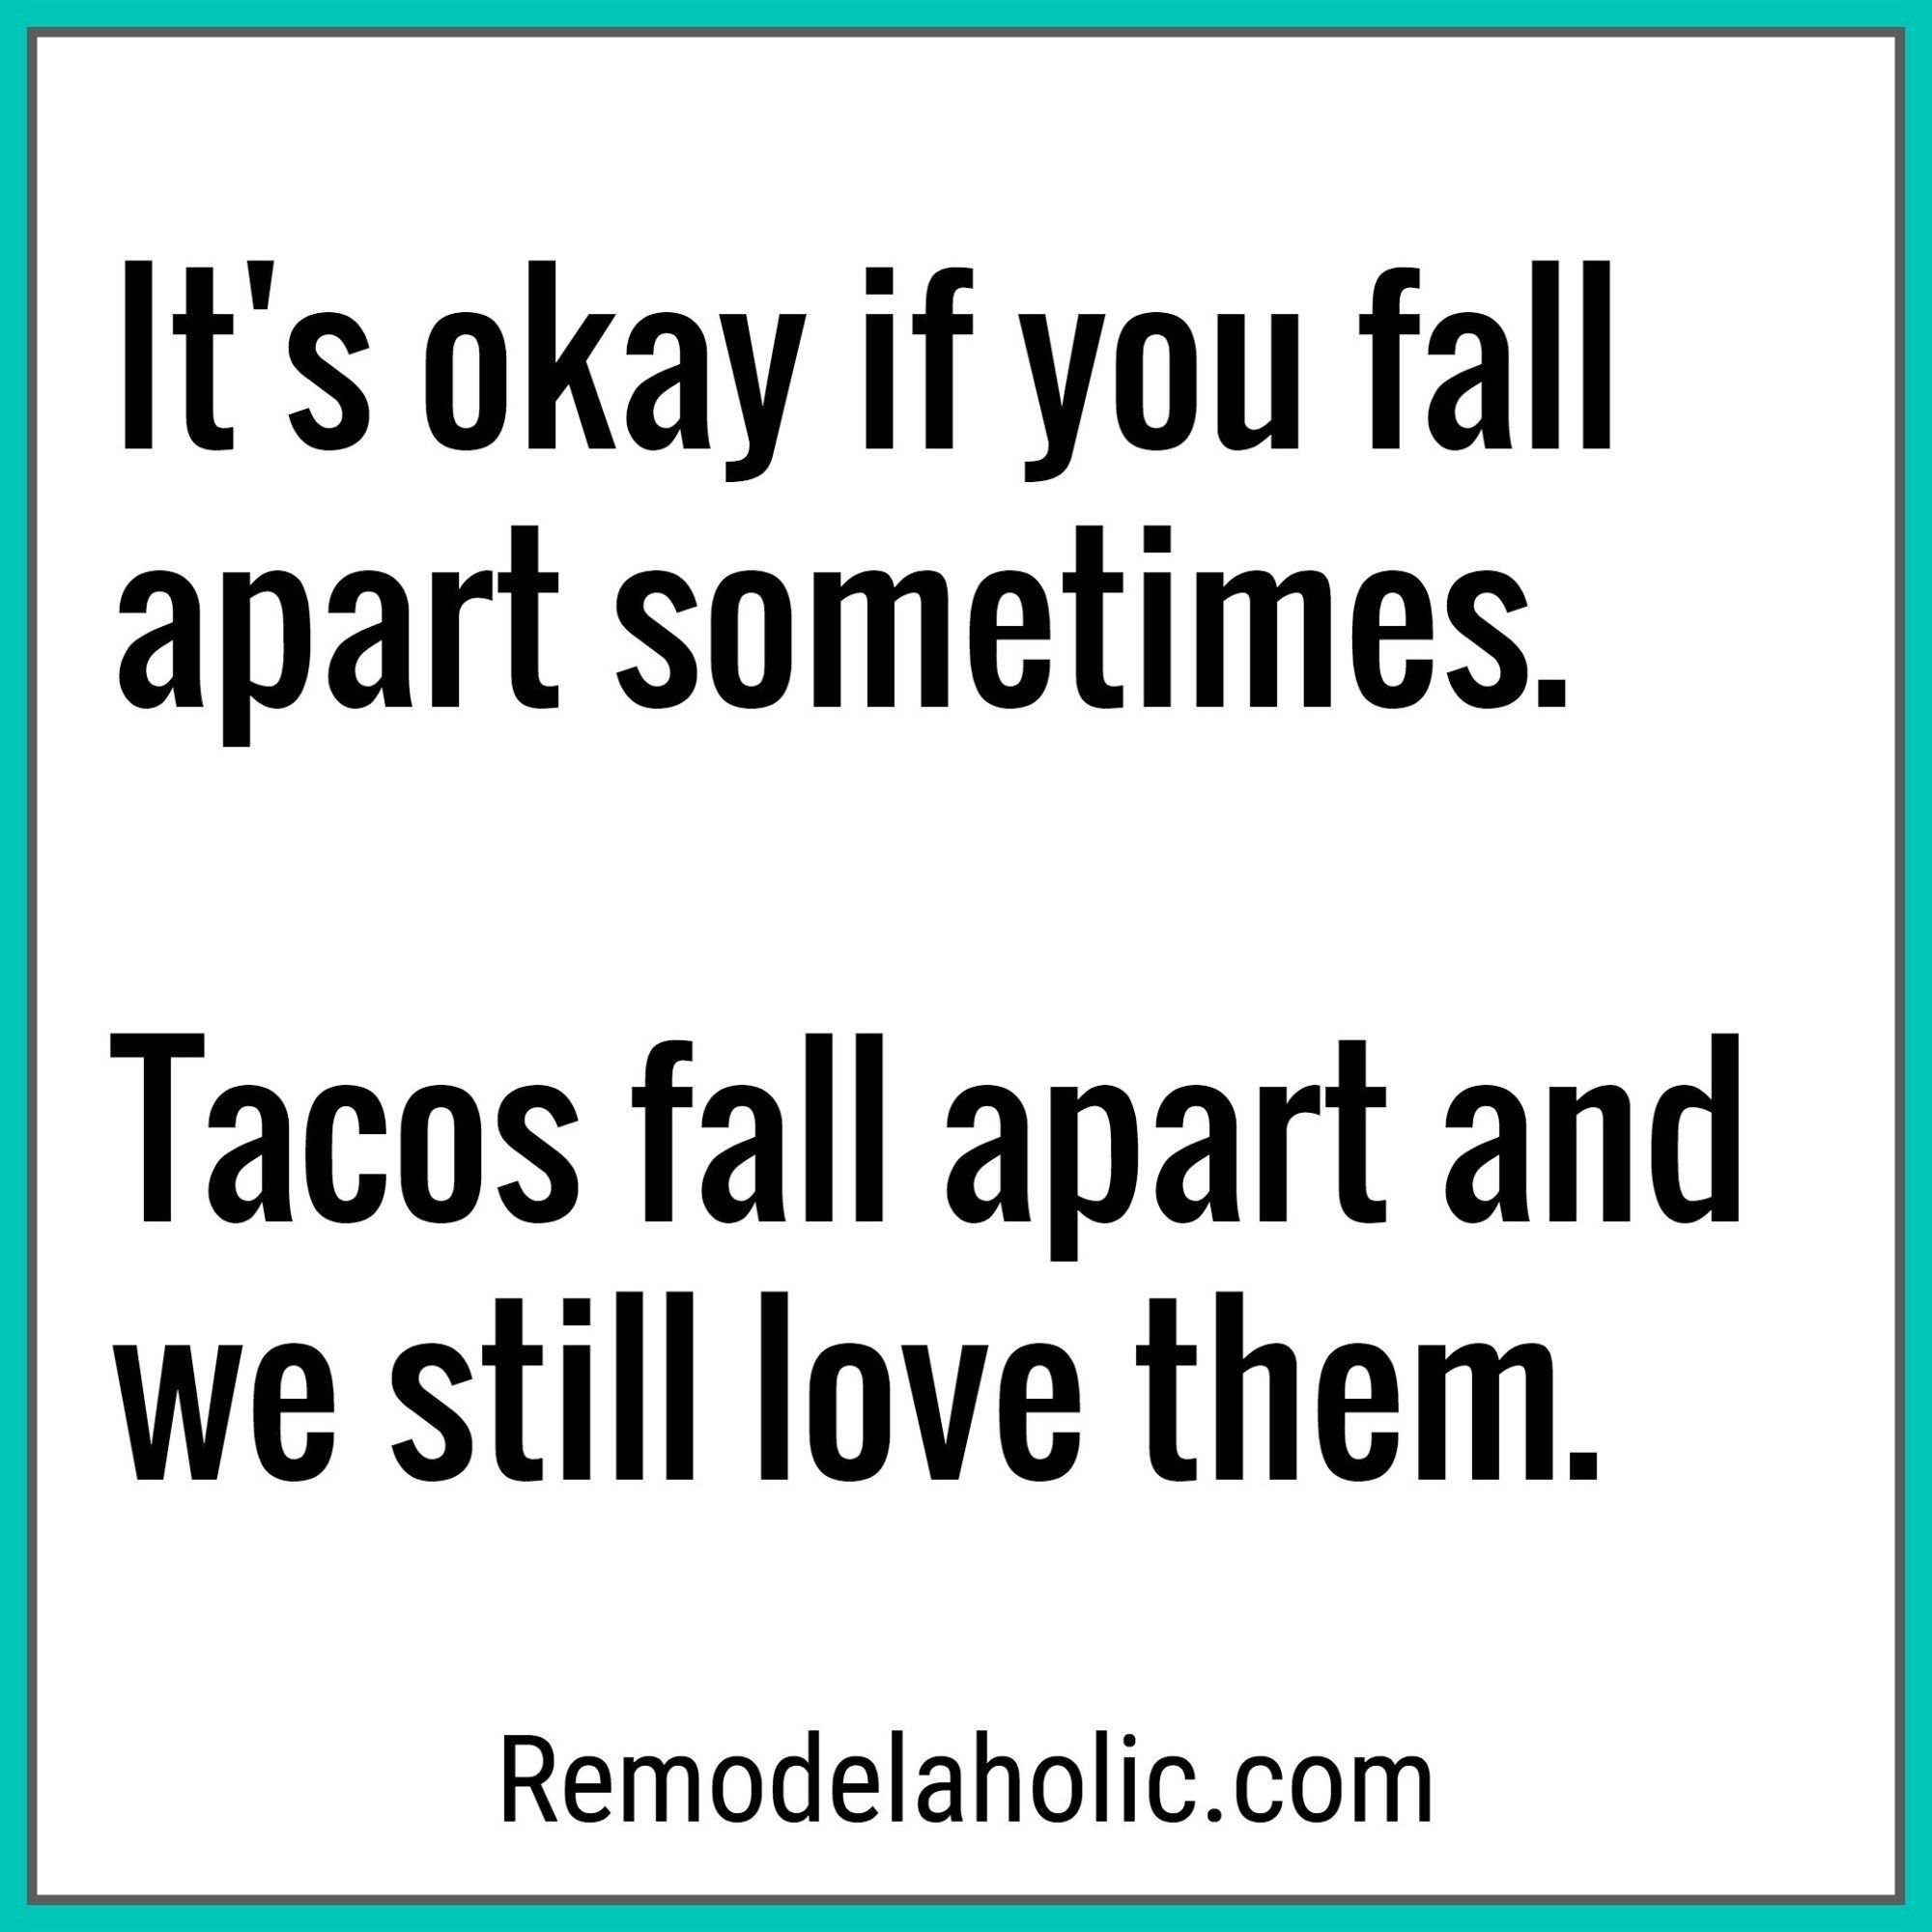 Friday Favorites: Useful and Pretty Built-Ins-ad_1]  Friday Favorites: Useful and Pretty Built-Ins  We Still Love Tacos Even Though They Fall Apart Meme Remodelaholic.com #funnyquotes #funnymemes #tacos #tacotuesday  -#FunnyQuotesaboutlove #FunnyQuotesbff #FunnyQuotesrelatable #FunnyQuotestoliveby #mostFunnyQuotesawesome